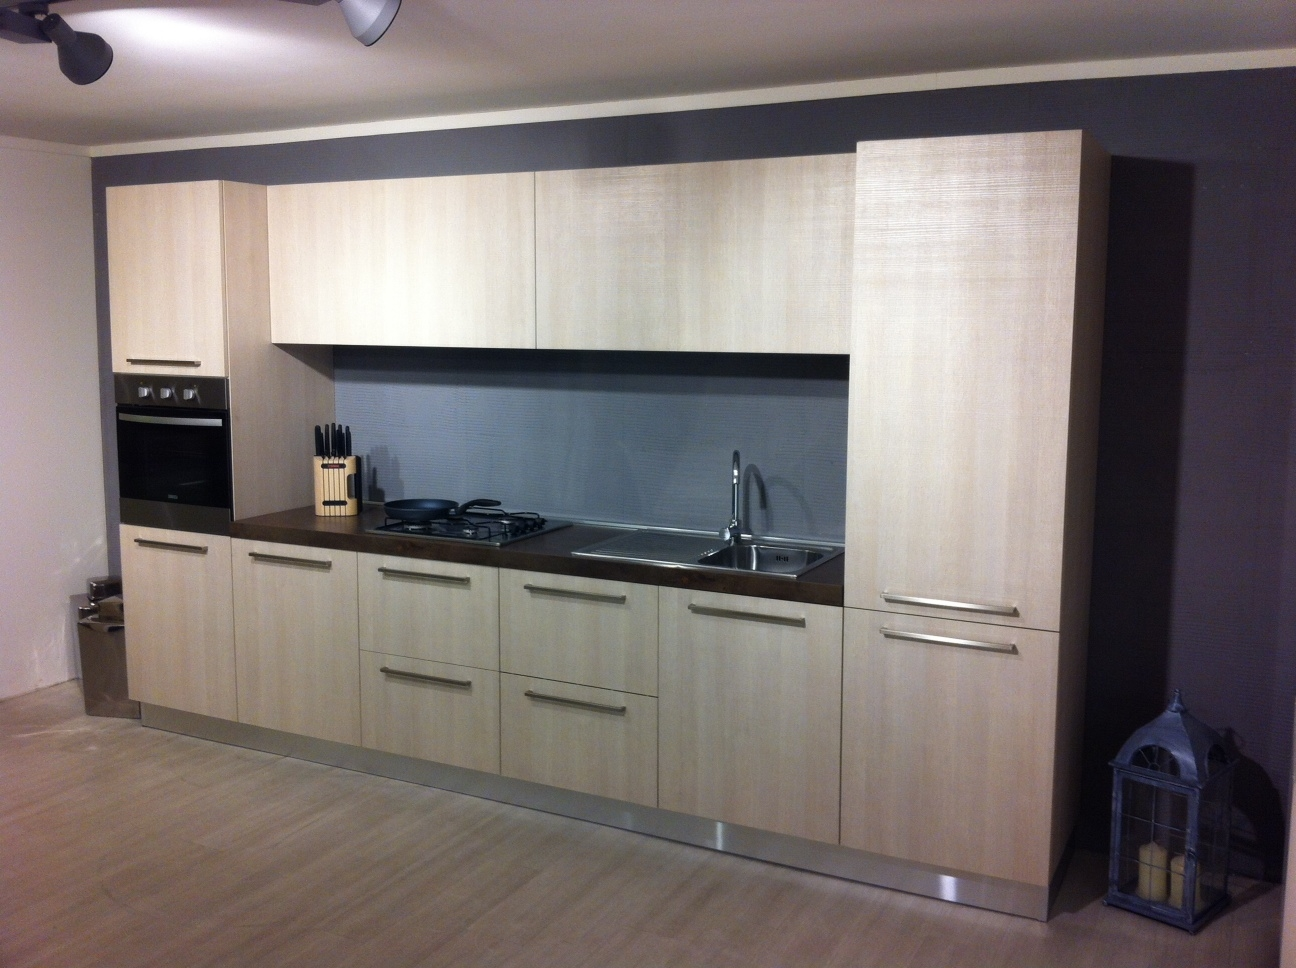 Emejing Cucine Ged Prezzi Images - Home Design Ideas 2017 ...